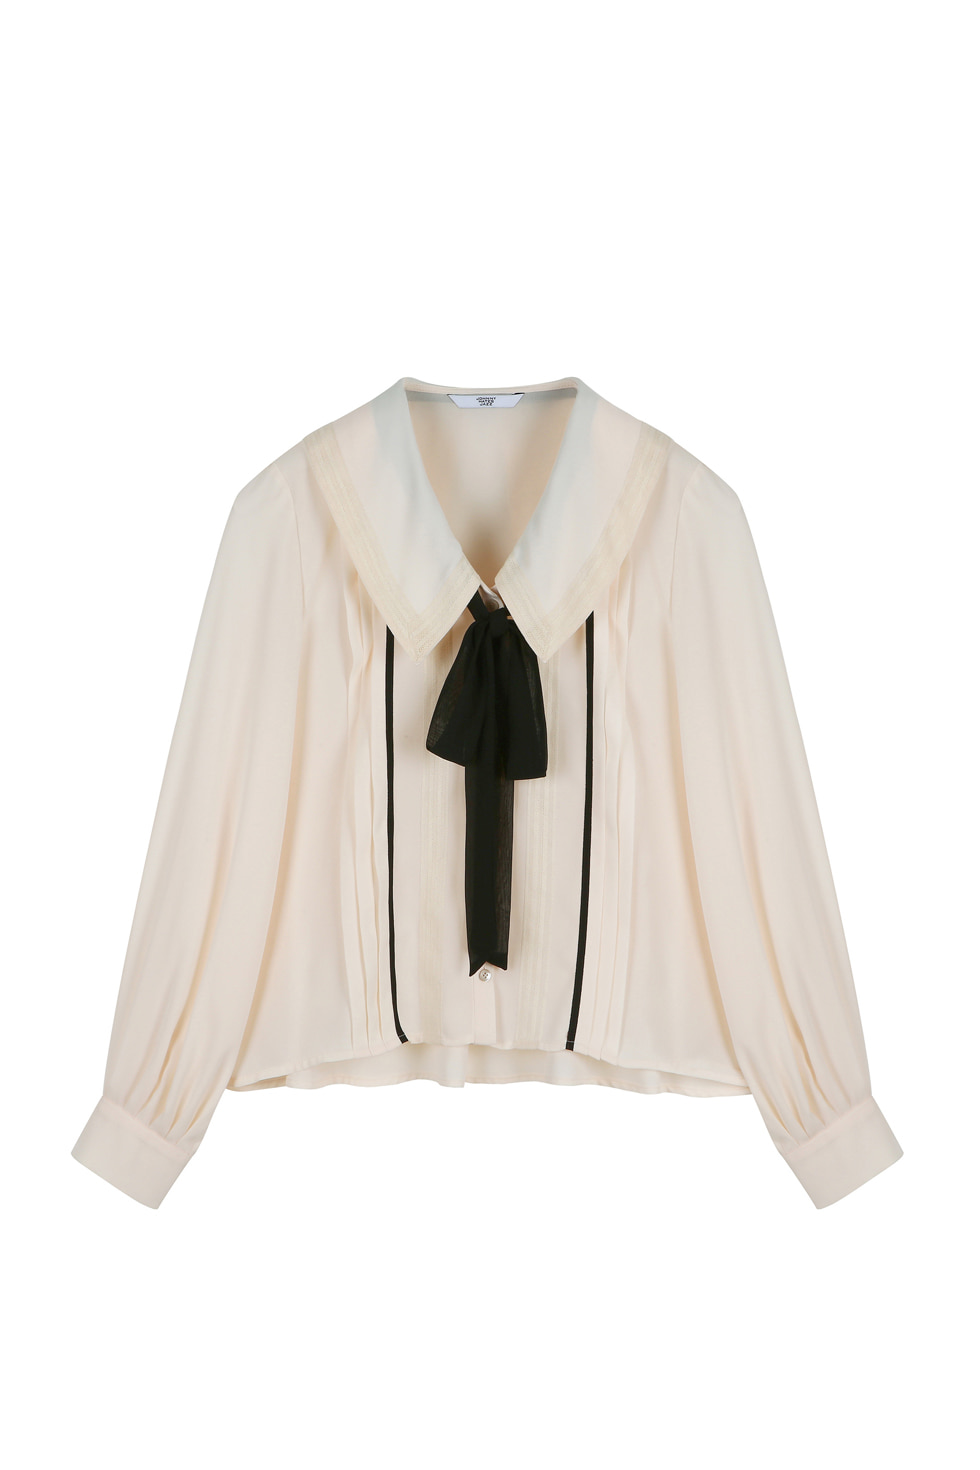 RIBBON TIE BLOUSE -IVORY